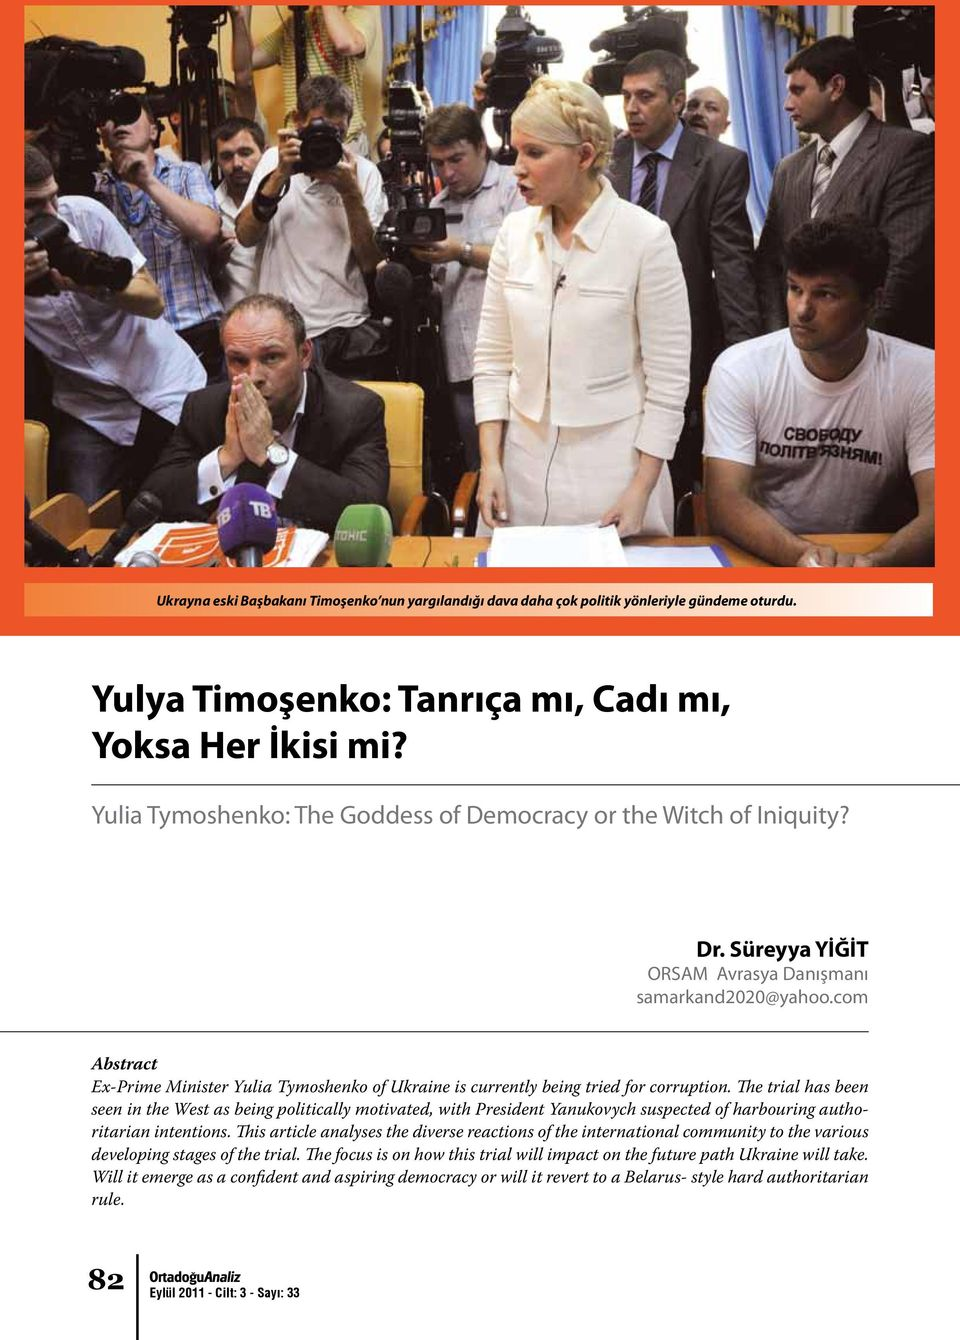 com Abstract Ex-Prime Minister Yulia Tymoshenko of Ukraine is currently being tried for corruption.